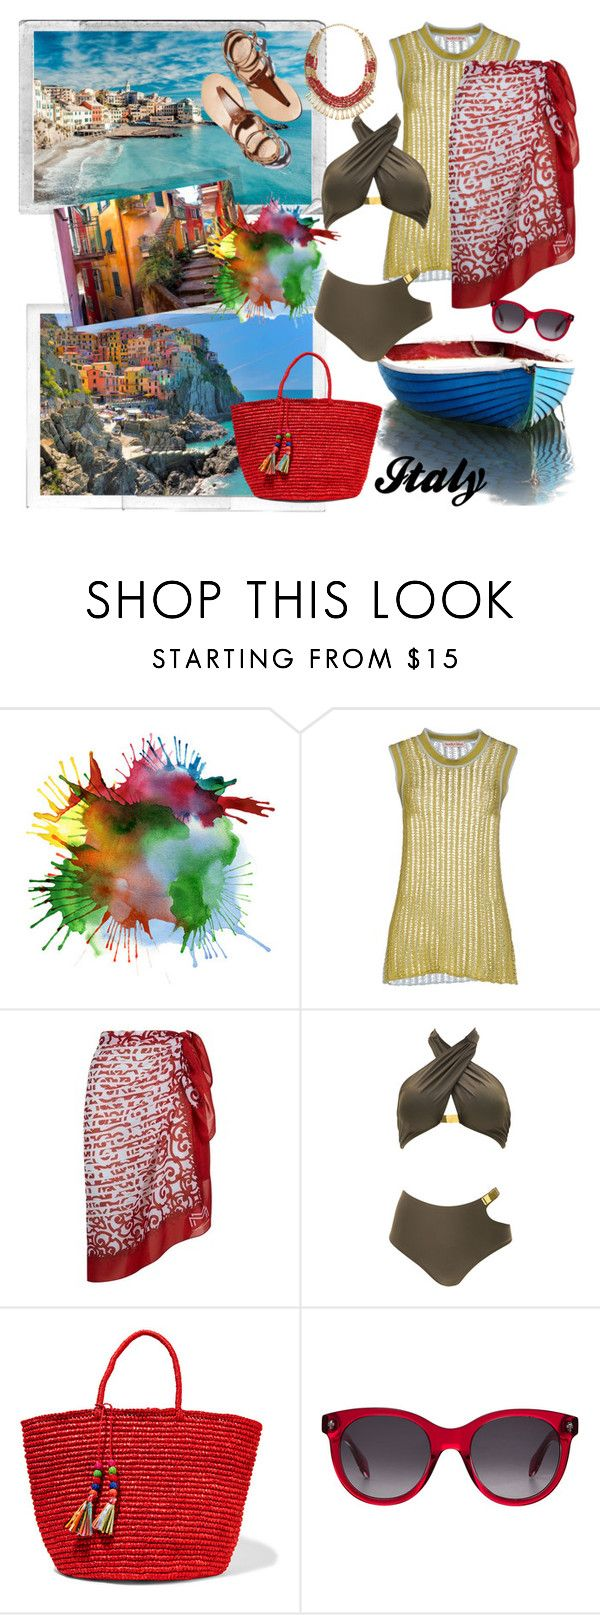 """Holidays in Italy. On the coast"" by carola-corana ❤ liked on Polyvore featuring Polaroid, Cinque, See by Chloé, Maryan Mehlhorn, Sensi Studio, Alexander McQueen, Stella & Dot, Italy, holidays and coast"